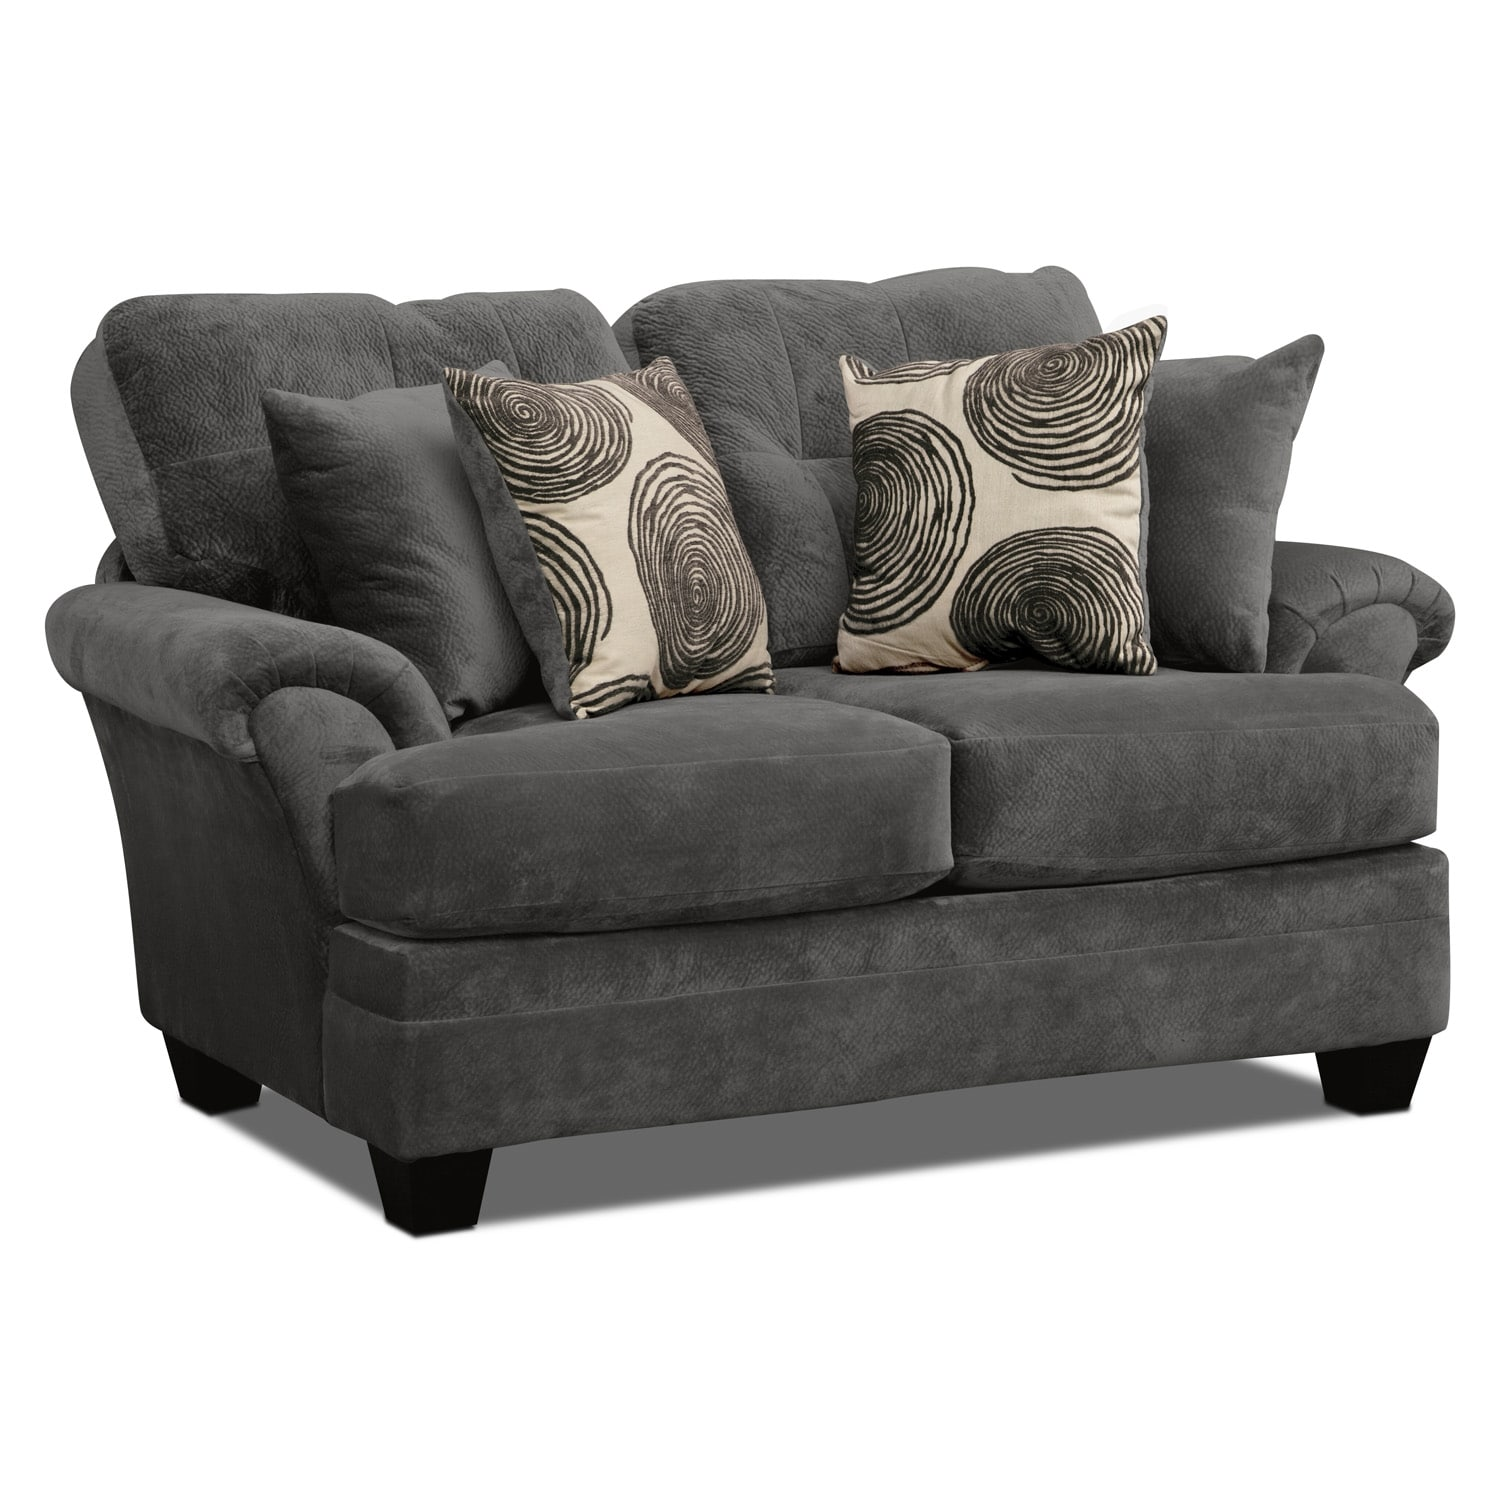 Cordelle Sofa Loveseat and Swivel Chair Set Gray